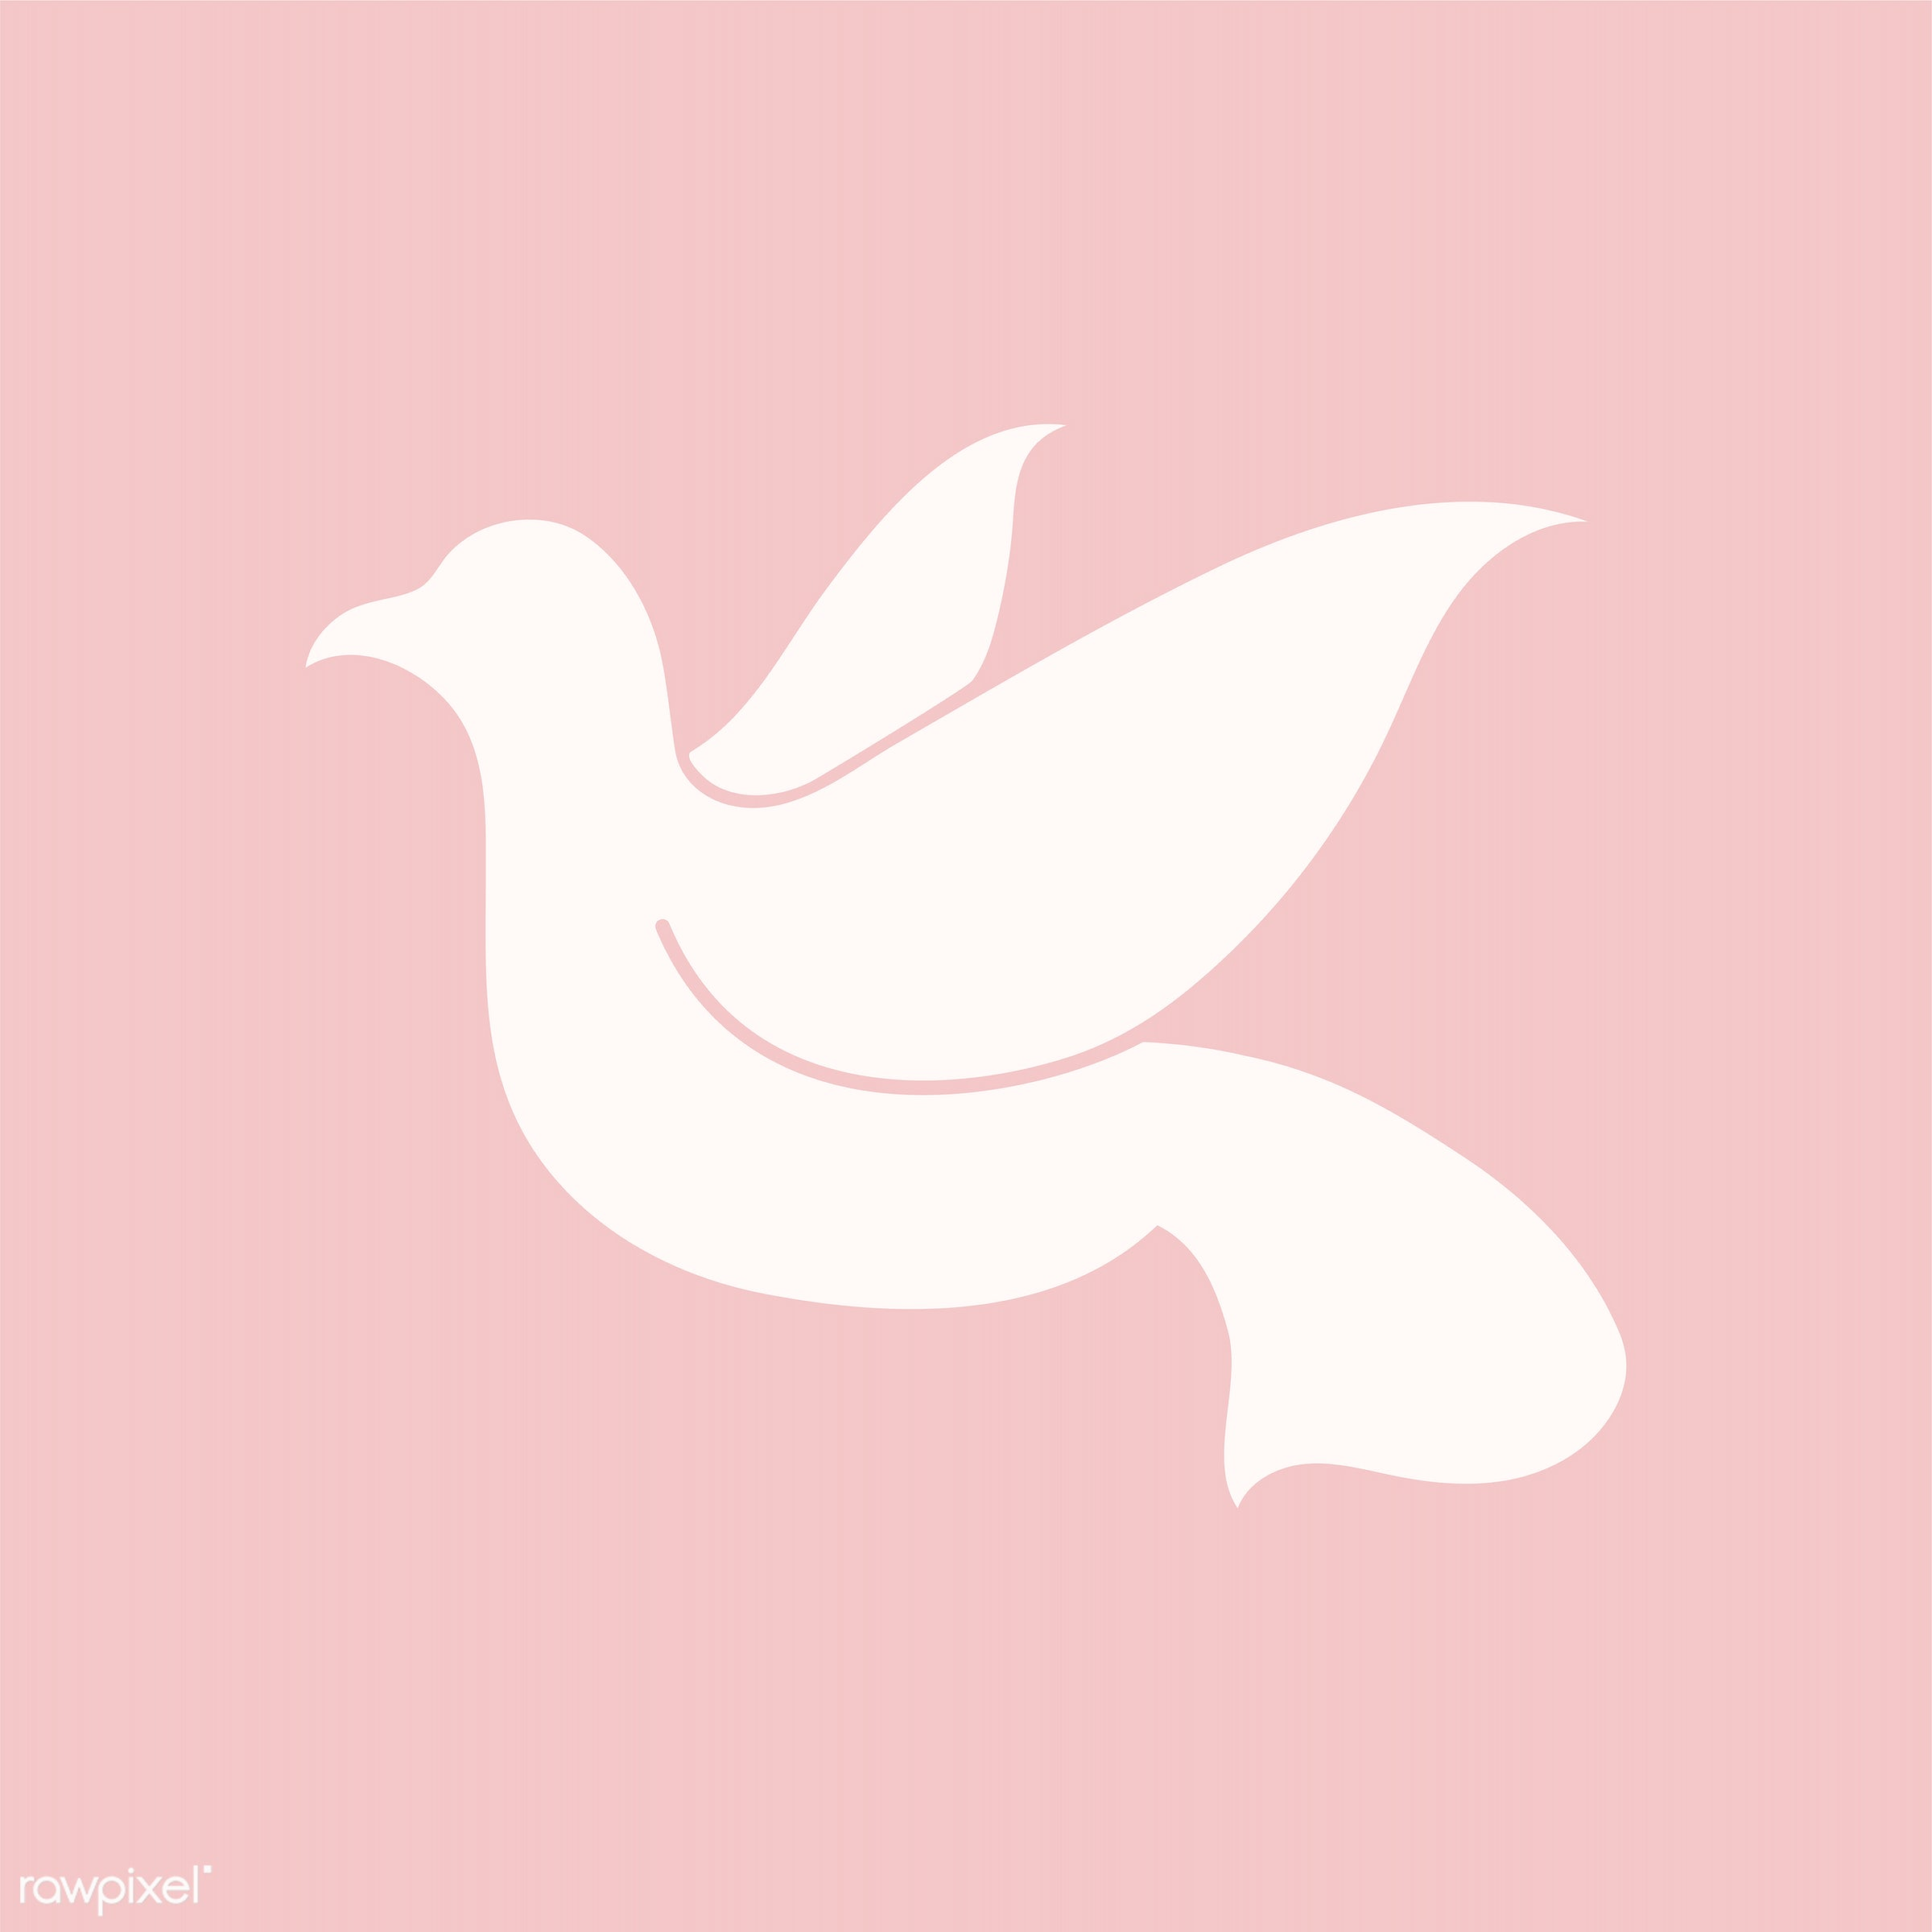 Dove symbol of peace illustration - ID: 444708